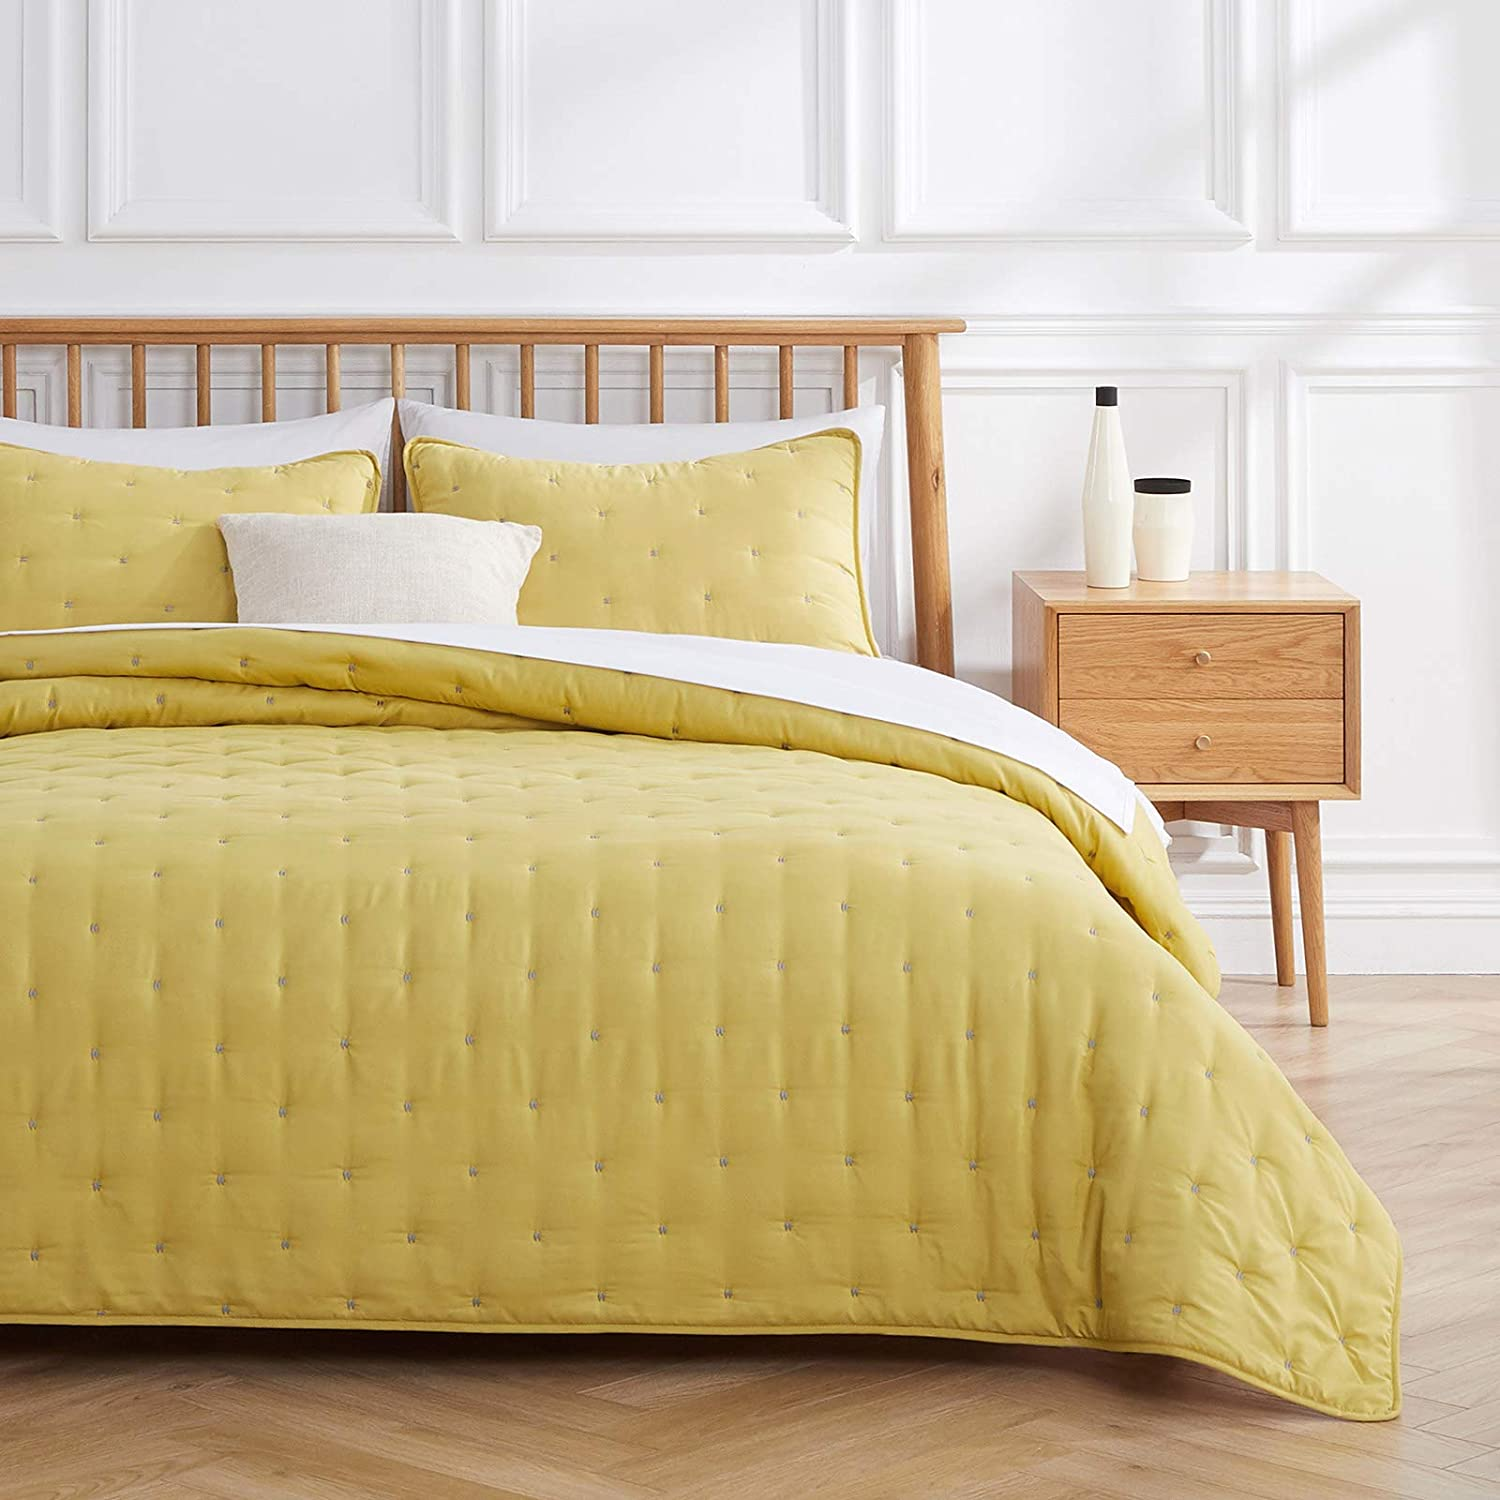 VEEYOO Quilt Sets Queen Bedspread - Yellow Quilt Queen (92x92 inches) Unique Stitches Pattern Quilting Bedspread, 3-Piece Lightweight Coverlet for All Season, 1 Quilt 2 Shams